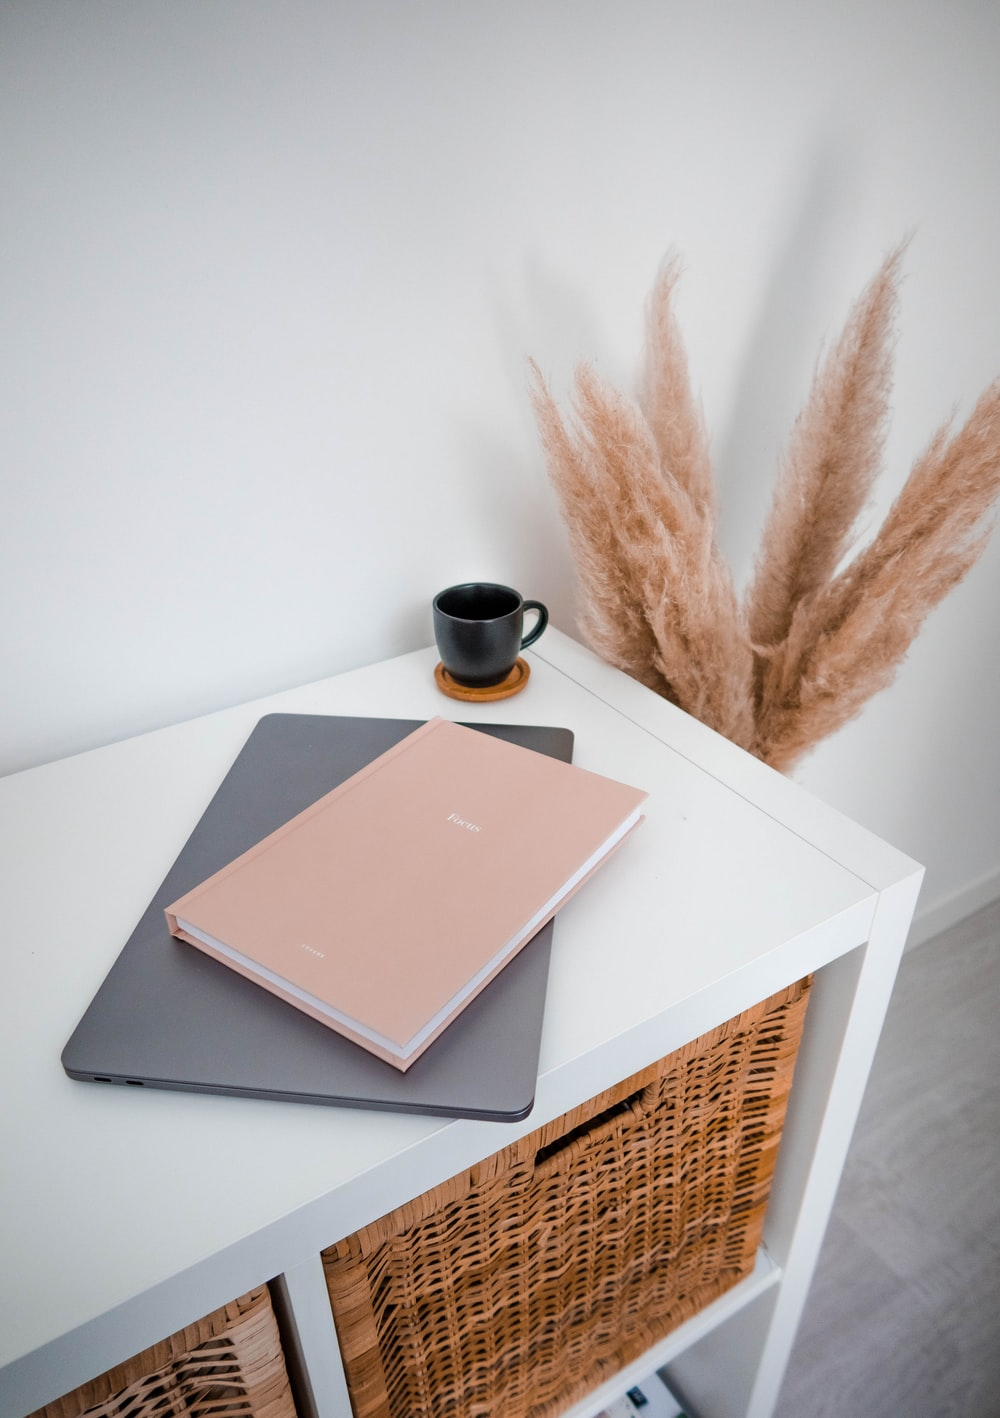 brown and black book on white table